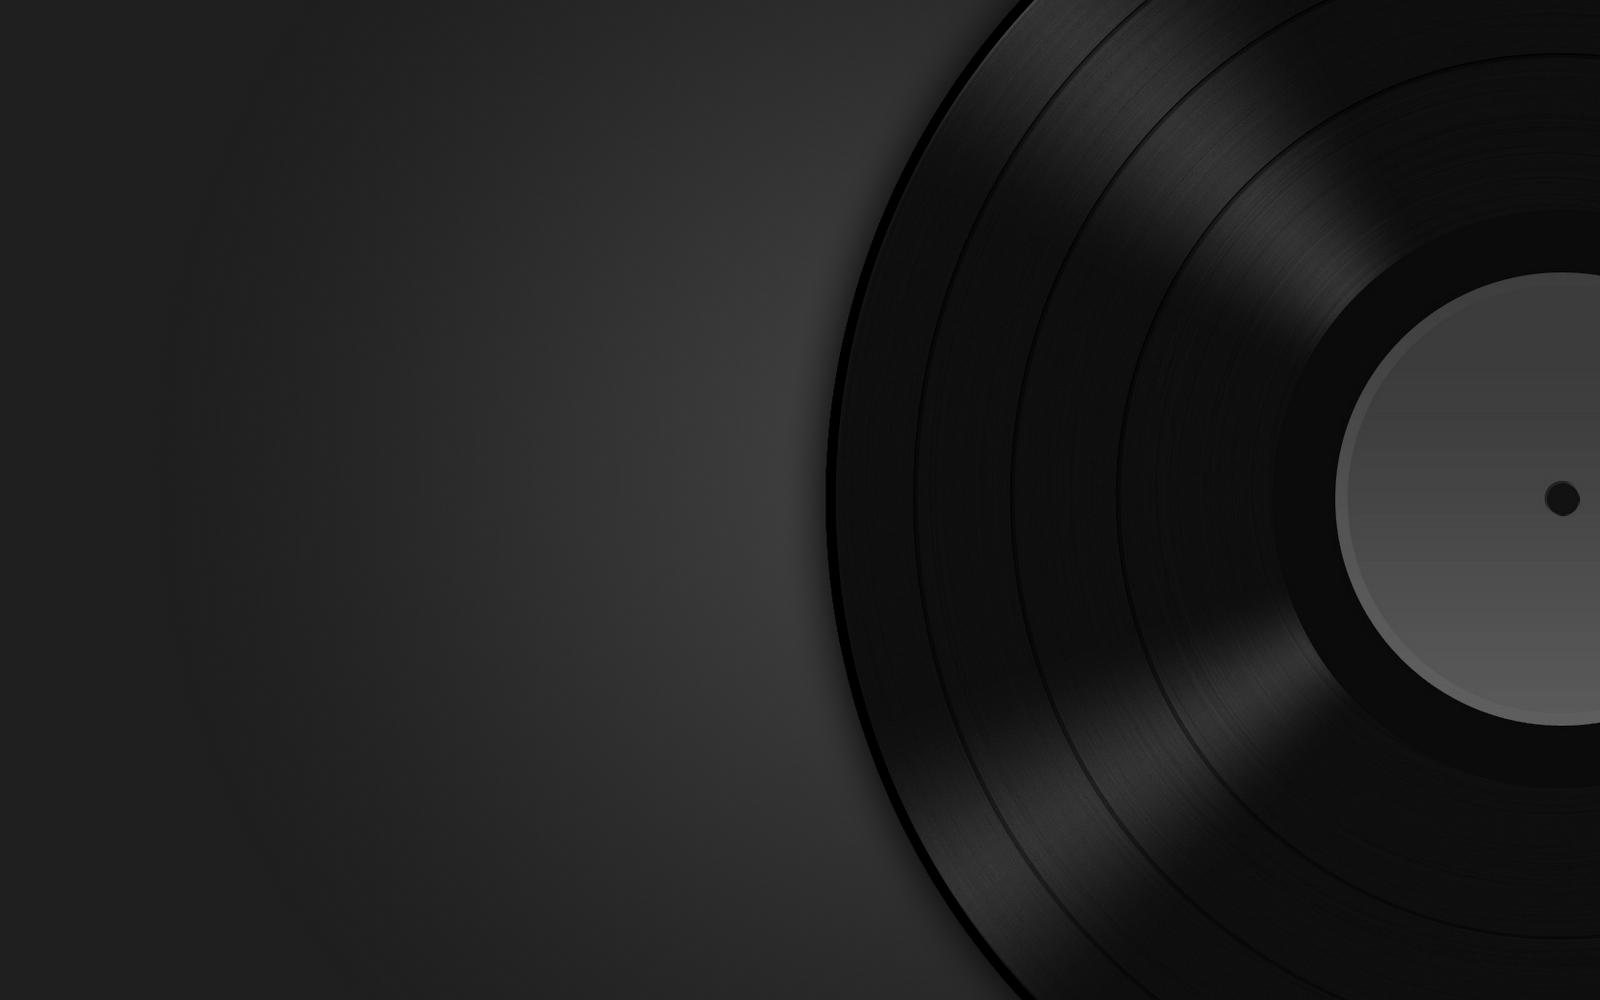 Music Backgrounds - Wallpaper Cave